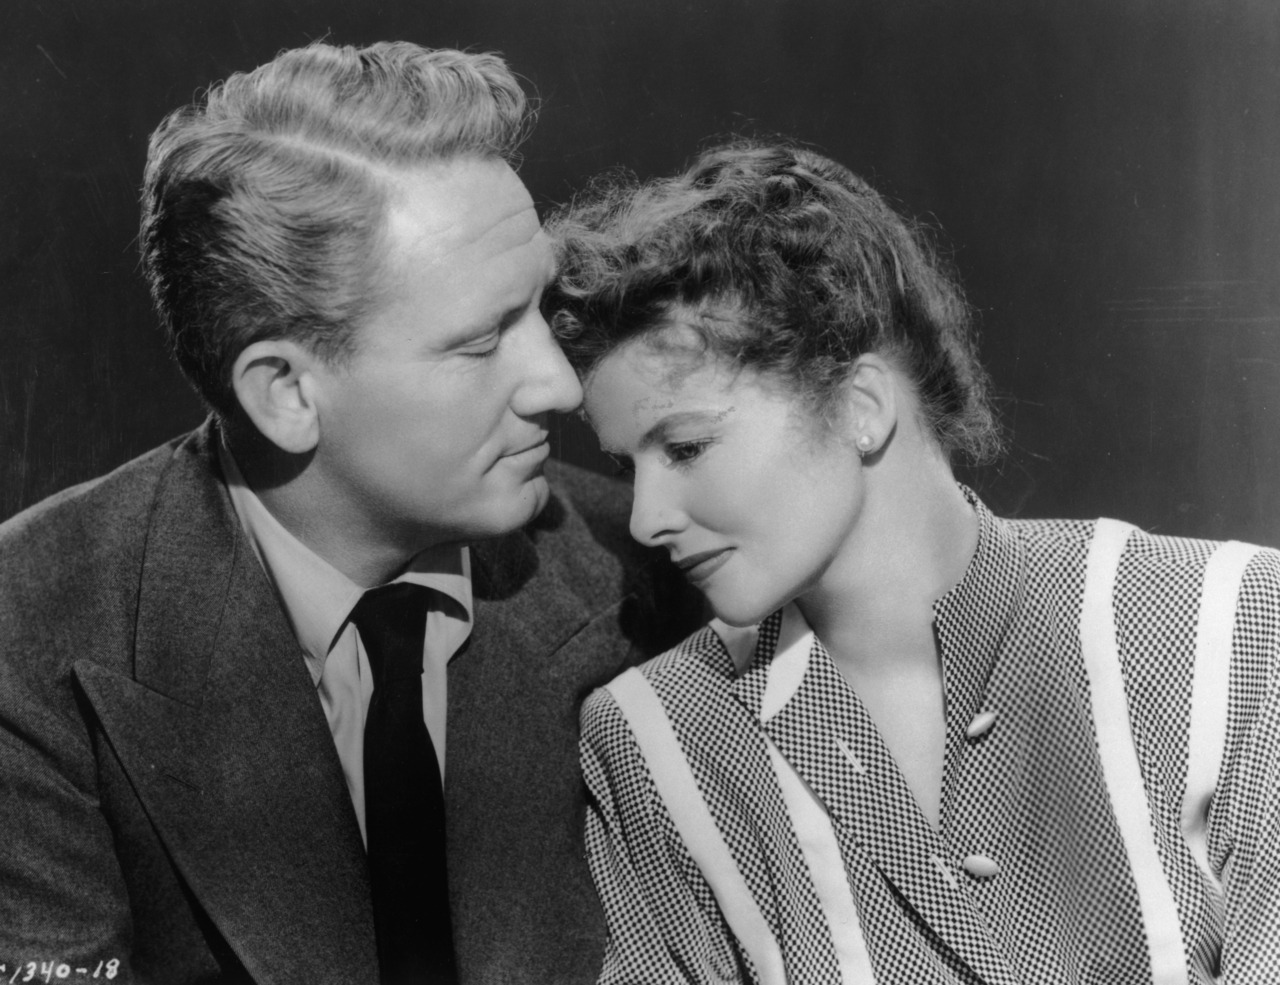 Spencer Tracy (April 5th, 1900 - June 10th, 1967)Katharine Hepburn (May 12th, 1907 - June 29th, 2003)